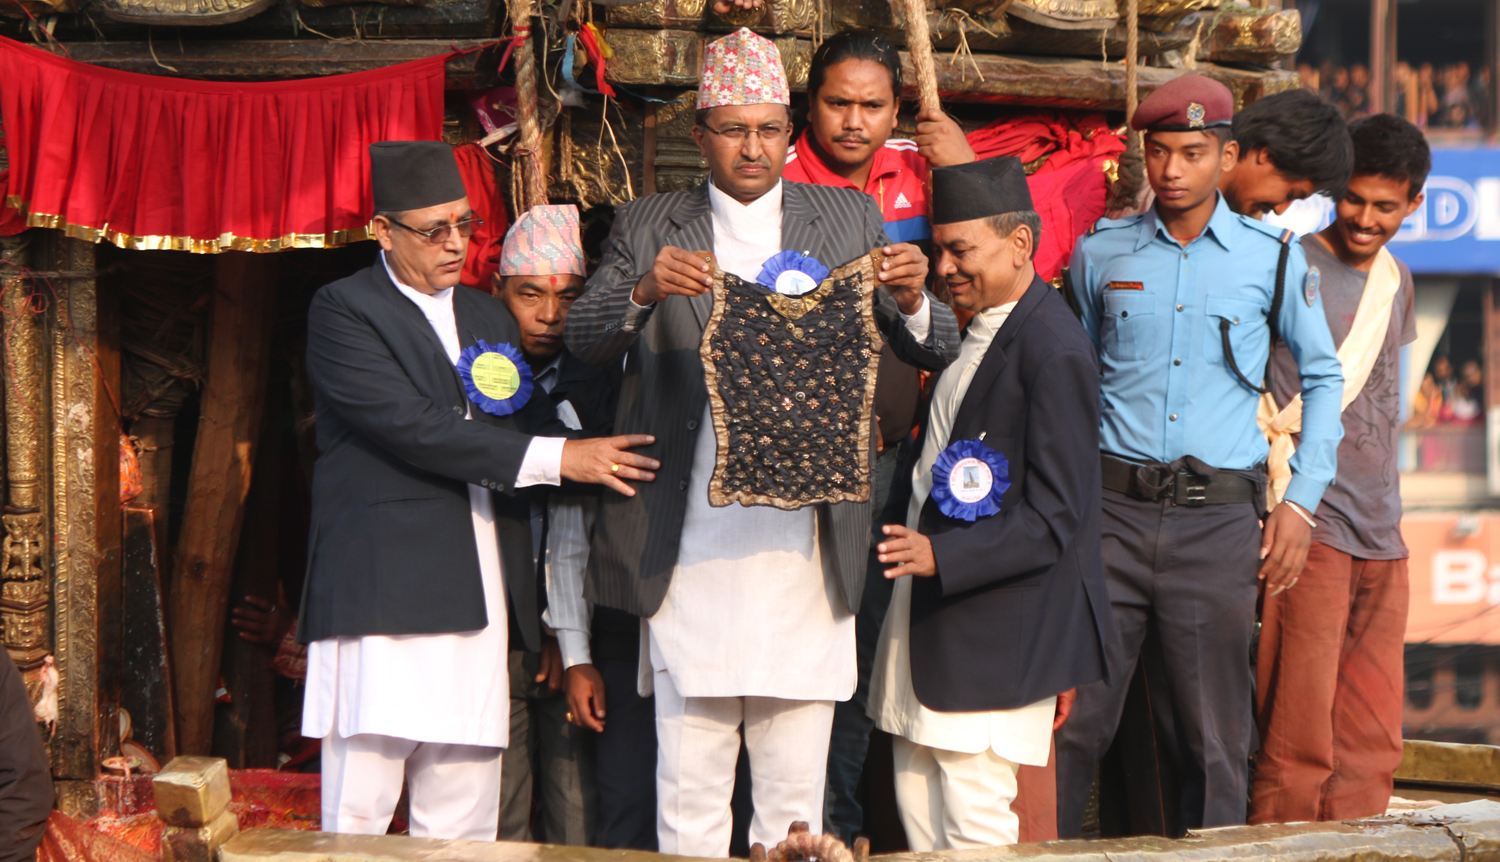 A Guthi Sansthan member displaying the black jewel-studded bhoto of Rato Machhindranath to the public from the chariot of the deity, in Lalitpur, in October 2016. Photo: RSS